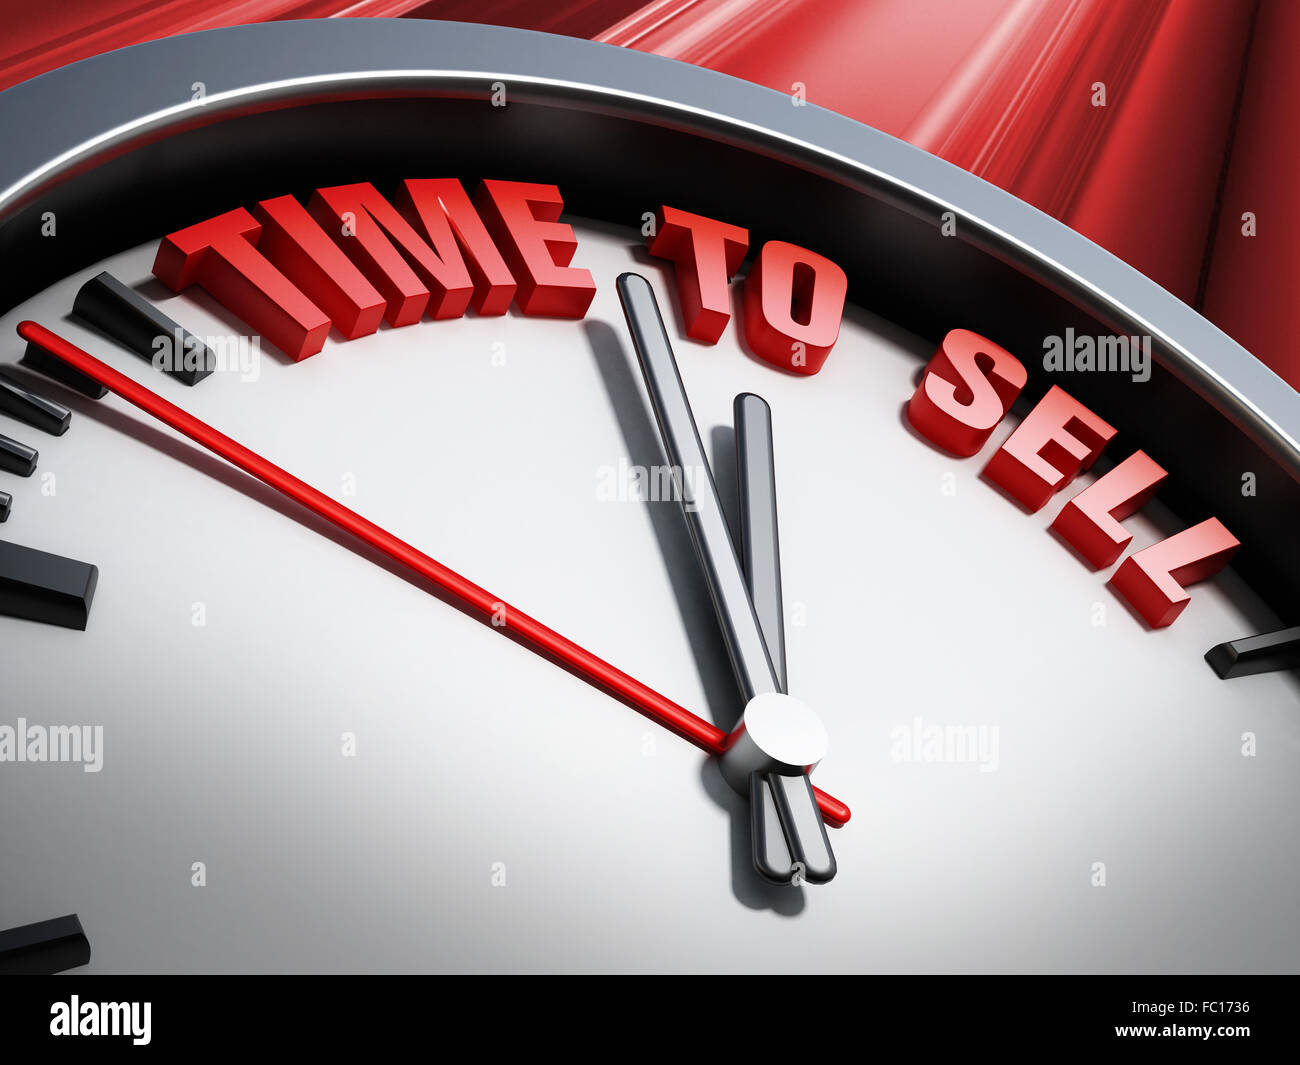 Time to sell statement written on the clock against red background - Stock Image